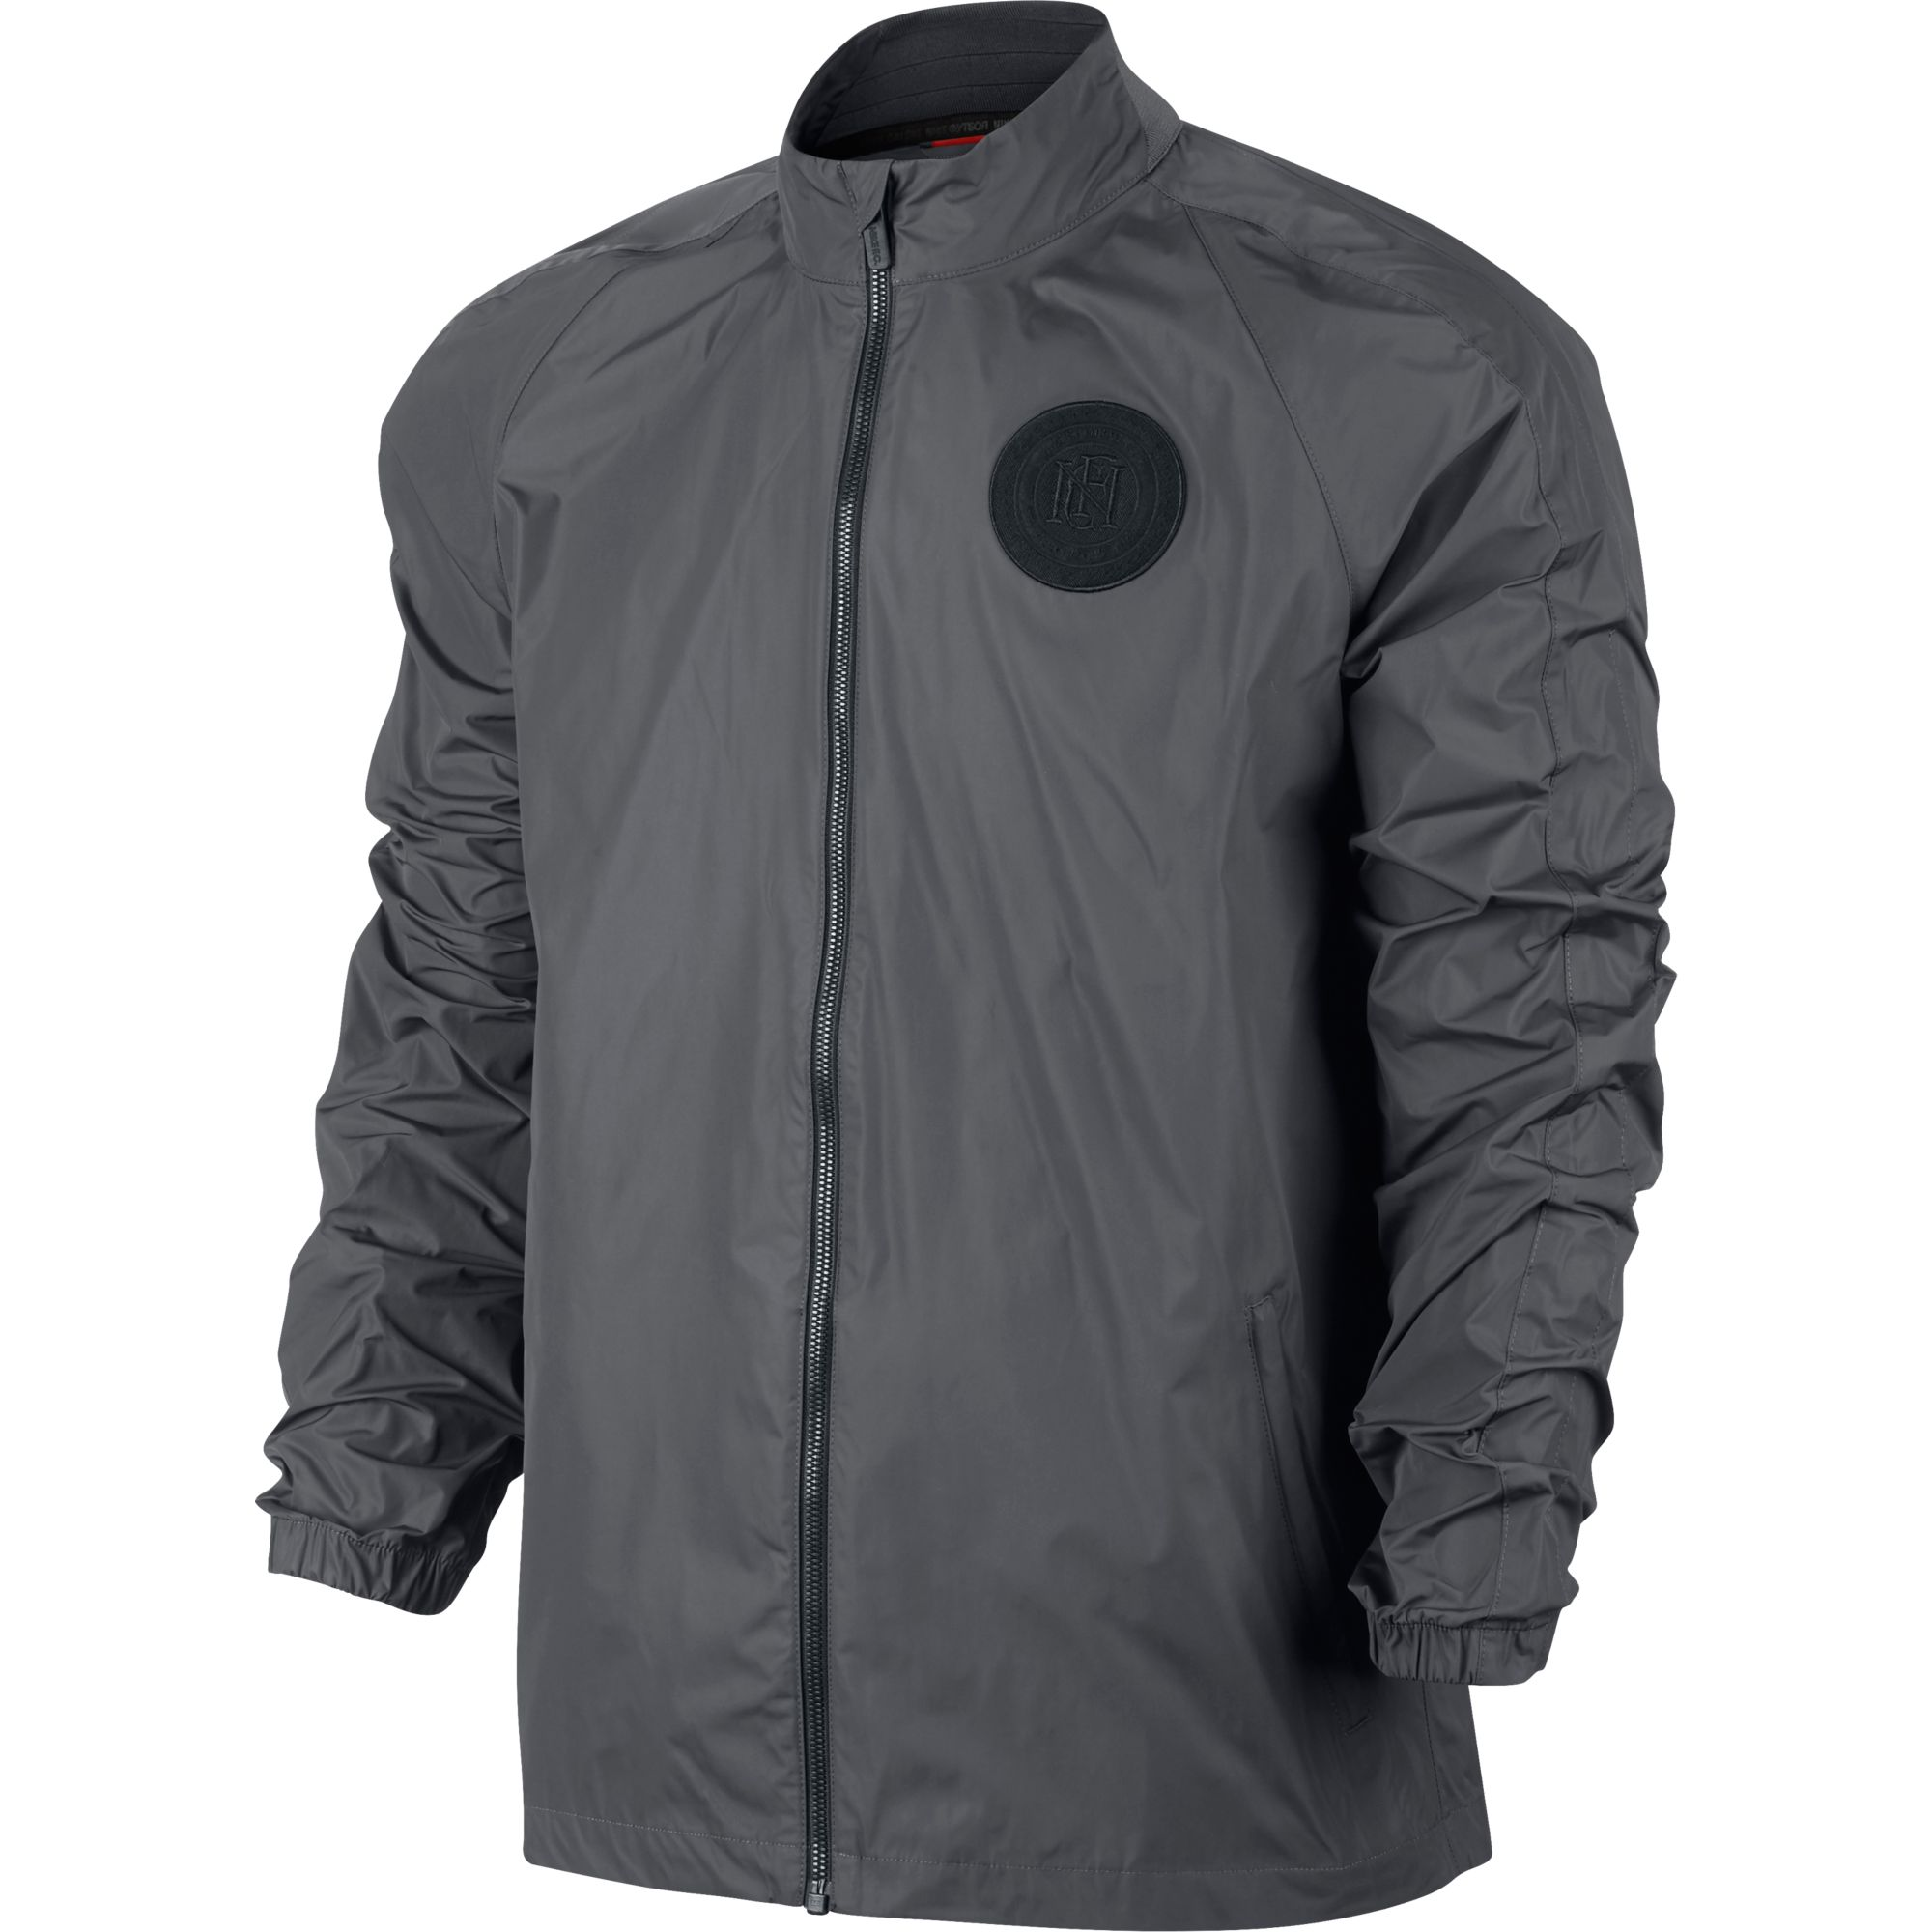 Nike jacket grey and white - Since It S Been Perfected By Nike Sportswear And Today It Exudes Sophistication And Style